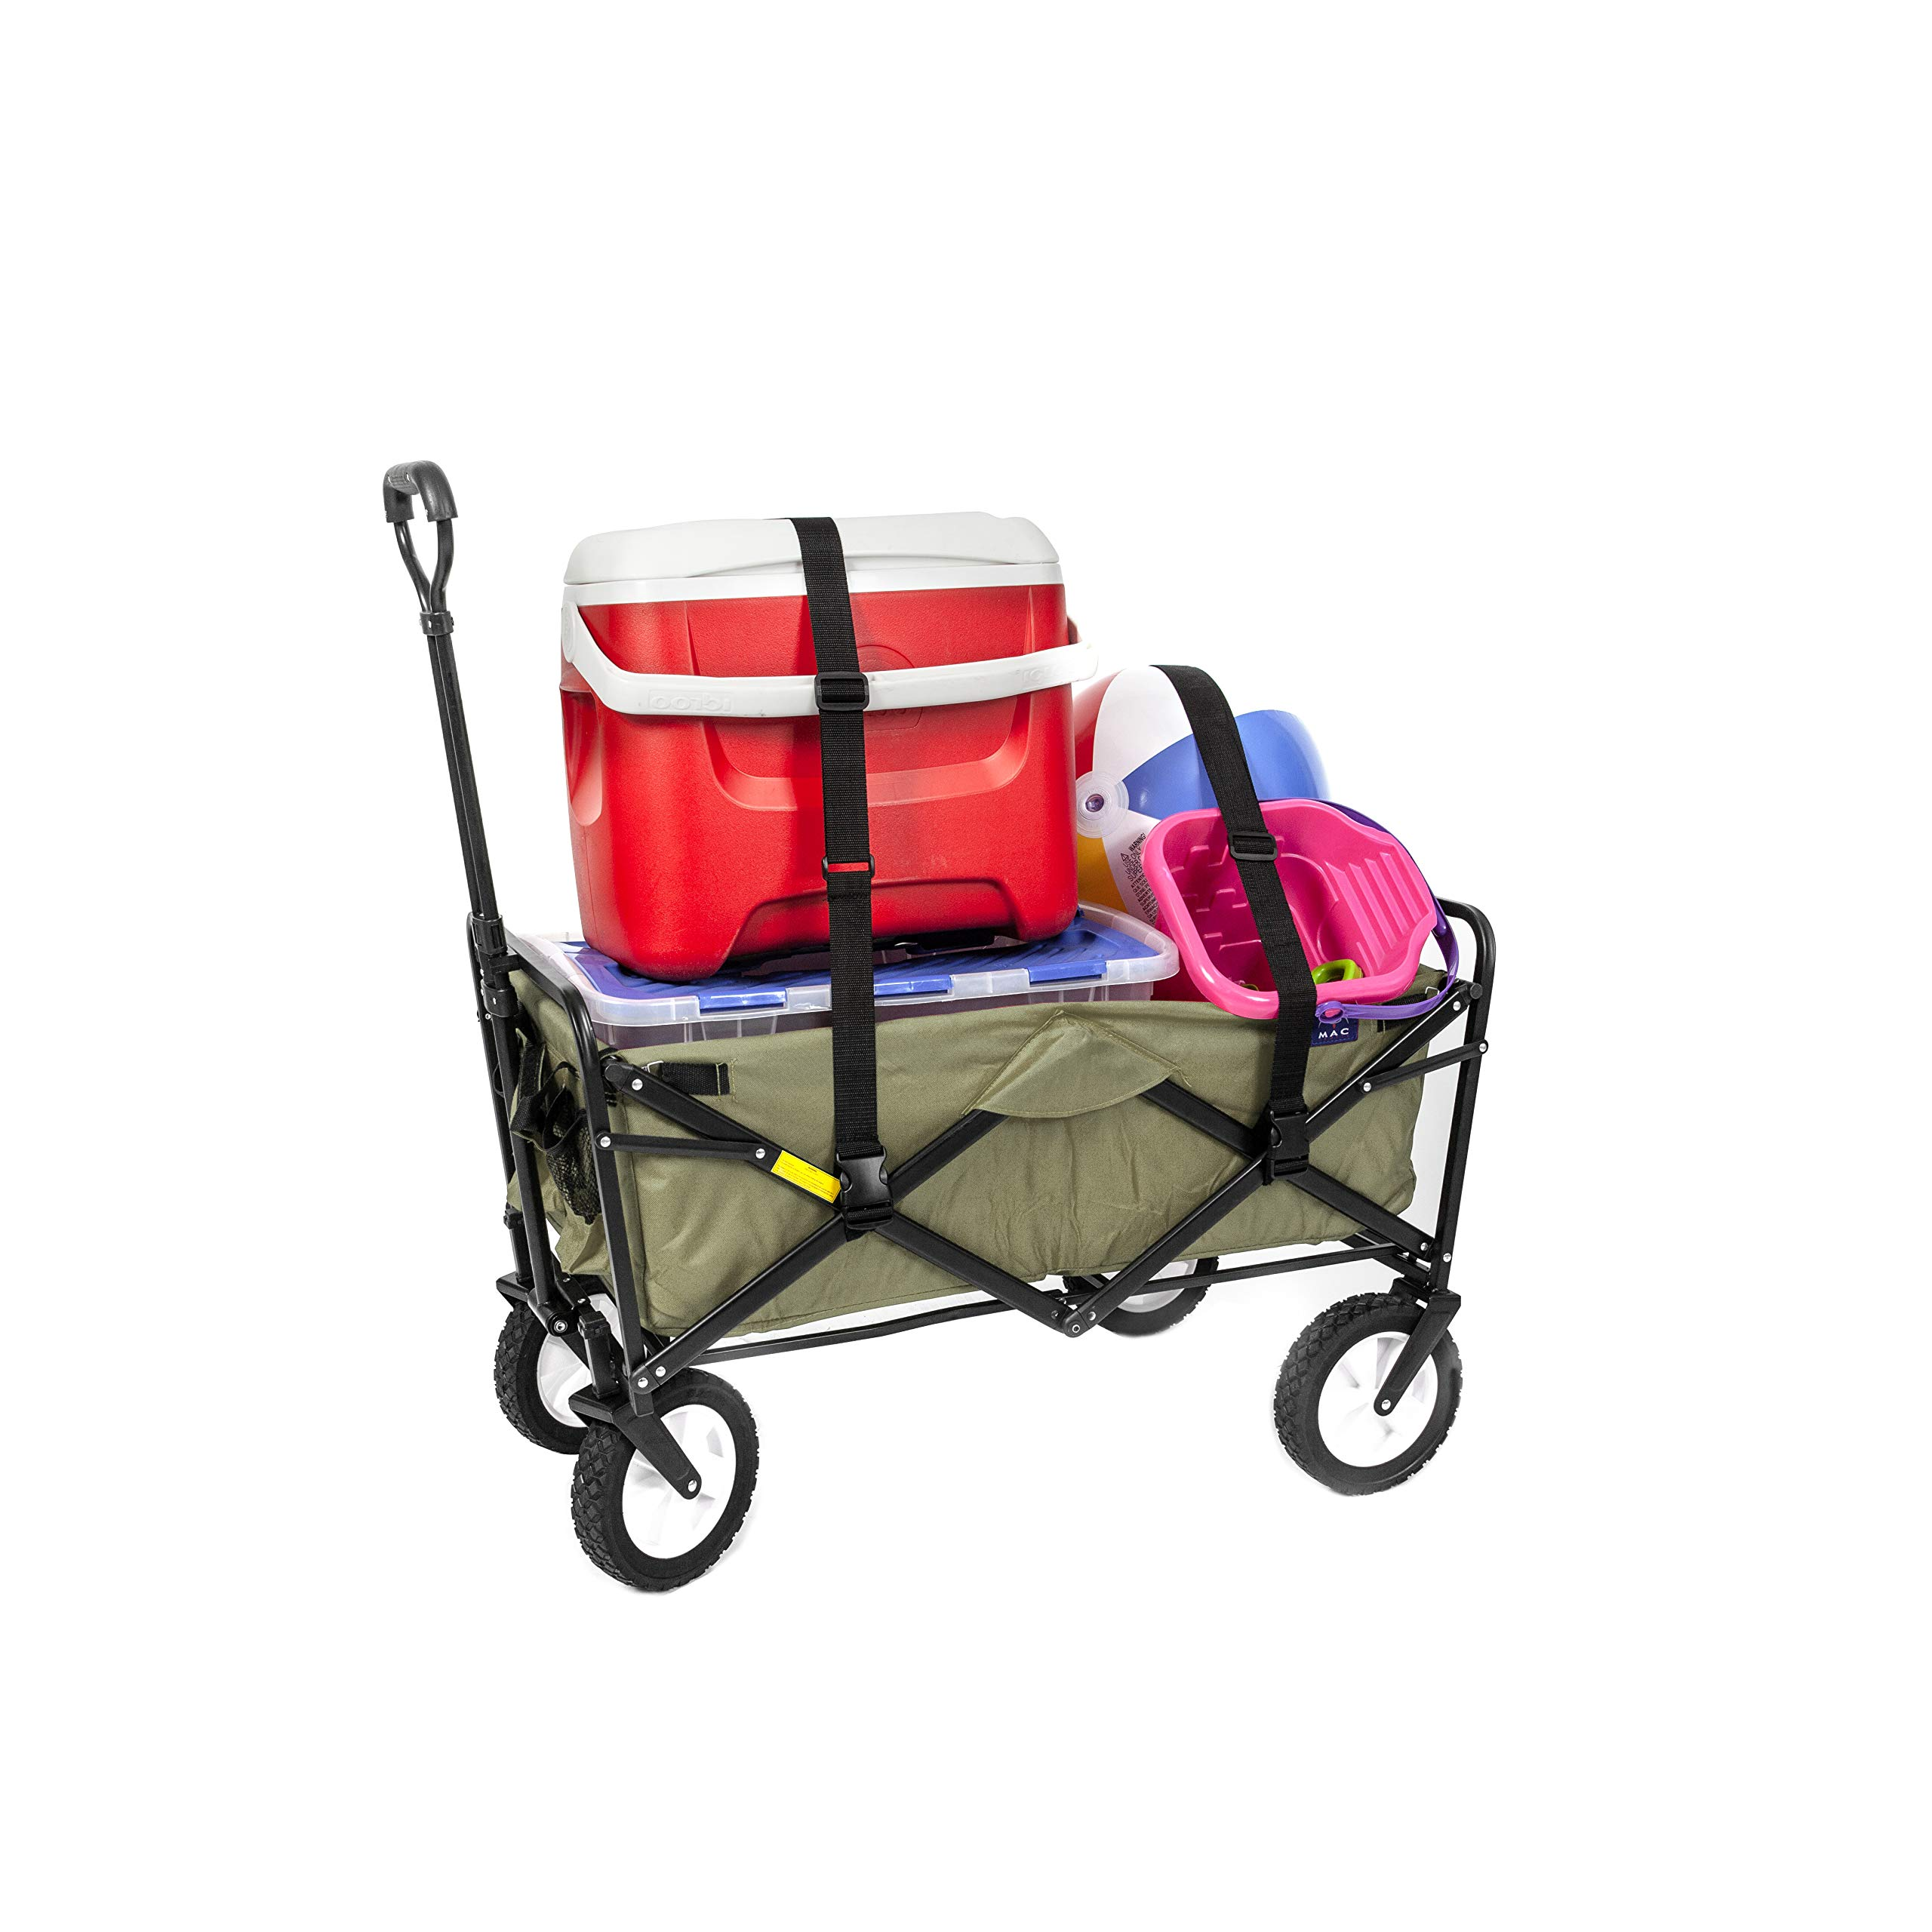 Mac Sports Collapsible Folding Outdoor Utility Wagon with Straps, Green